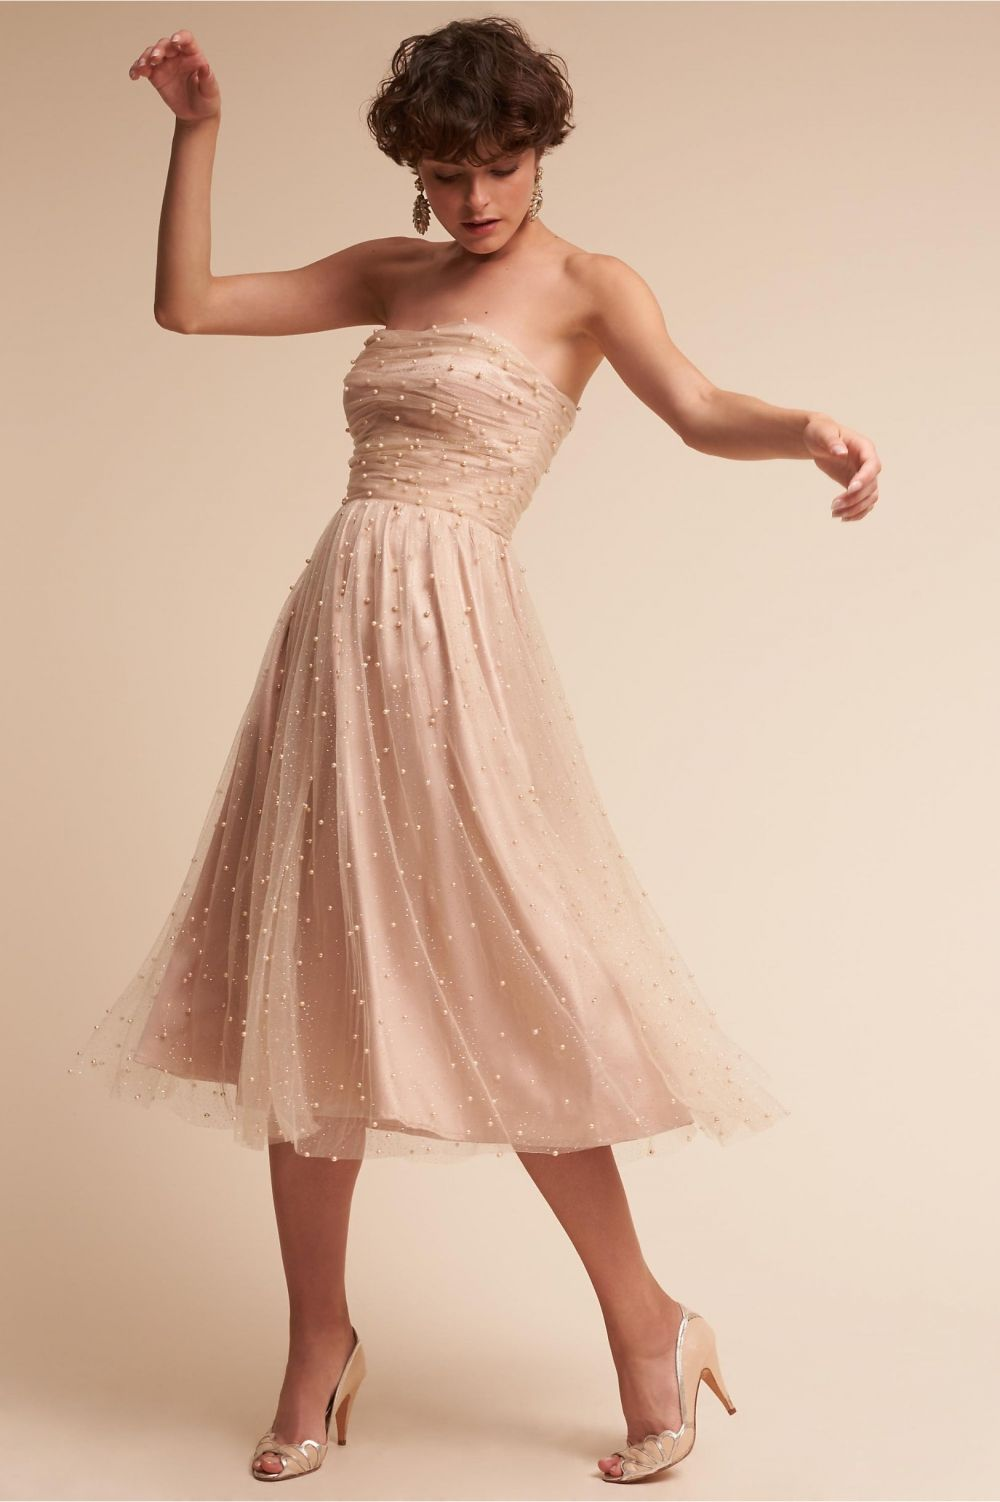 Gorgeous dress for wedding party  Gorgeous Spring Inspired Bridesmaid Gowns  Polka Dot Bride  Dress